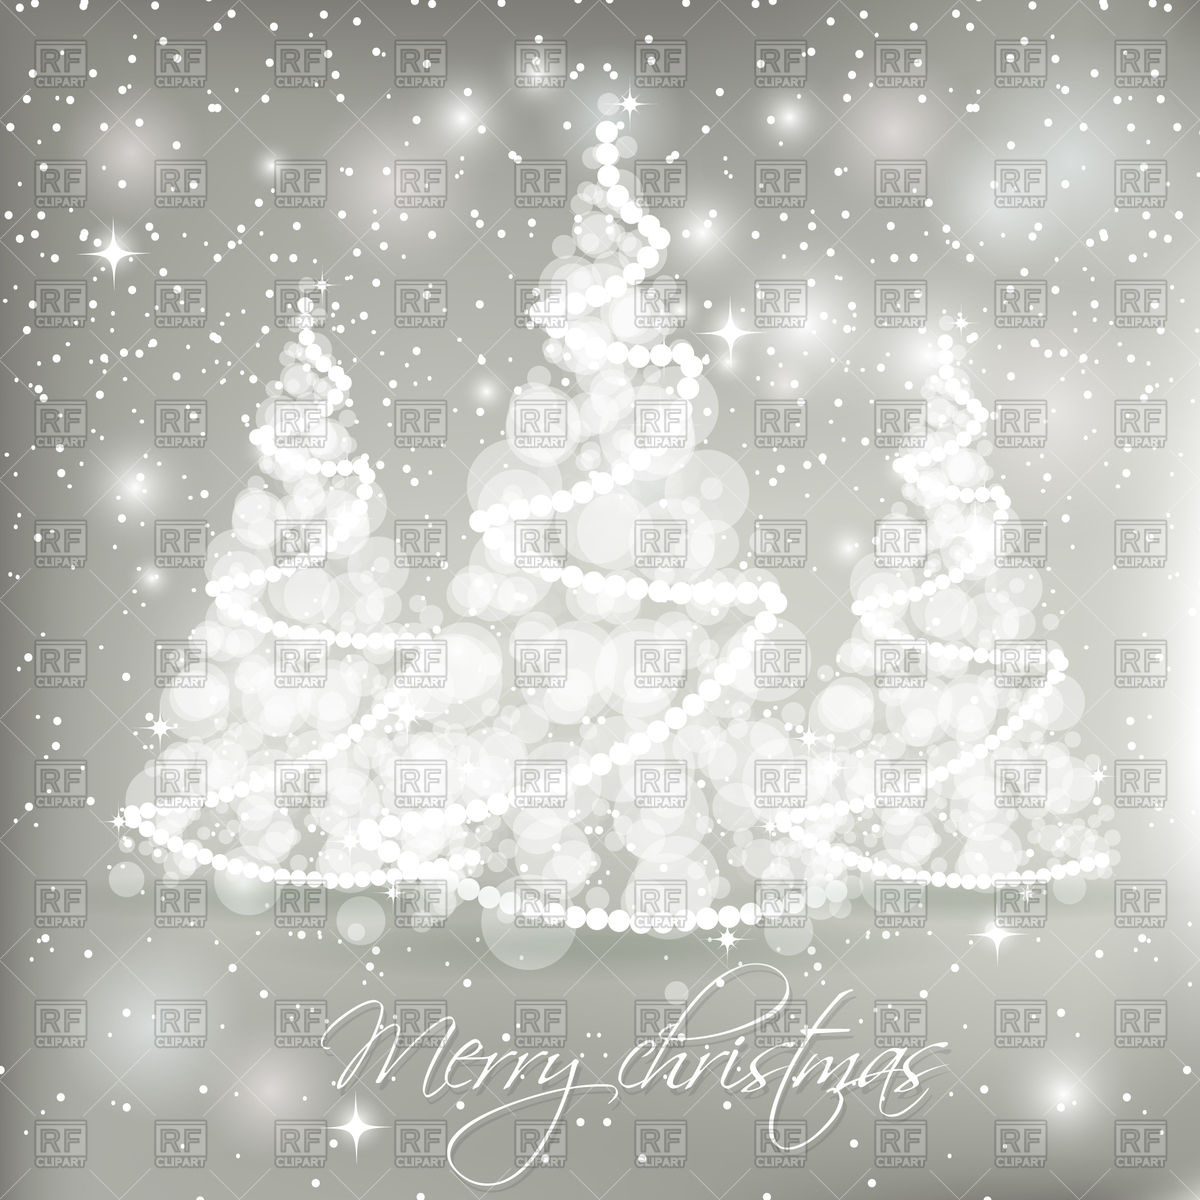 1200x1200 - Christmas Trees Backgrounds 39